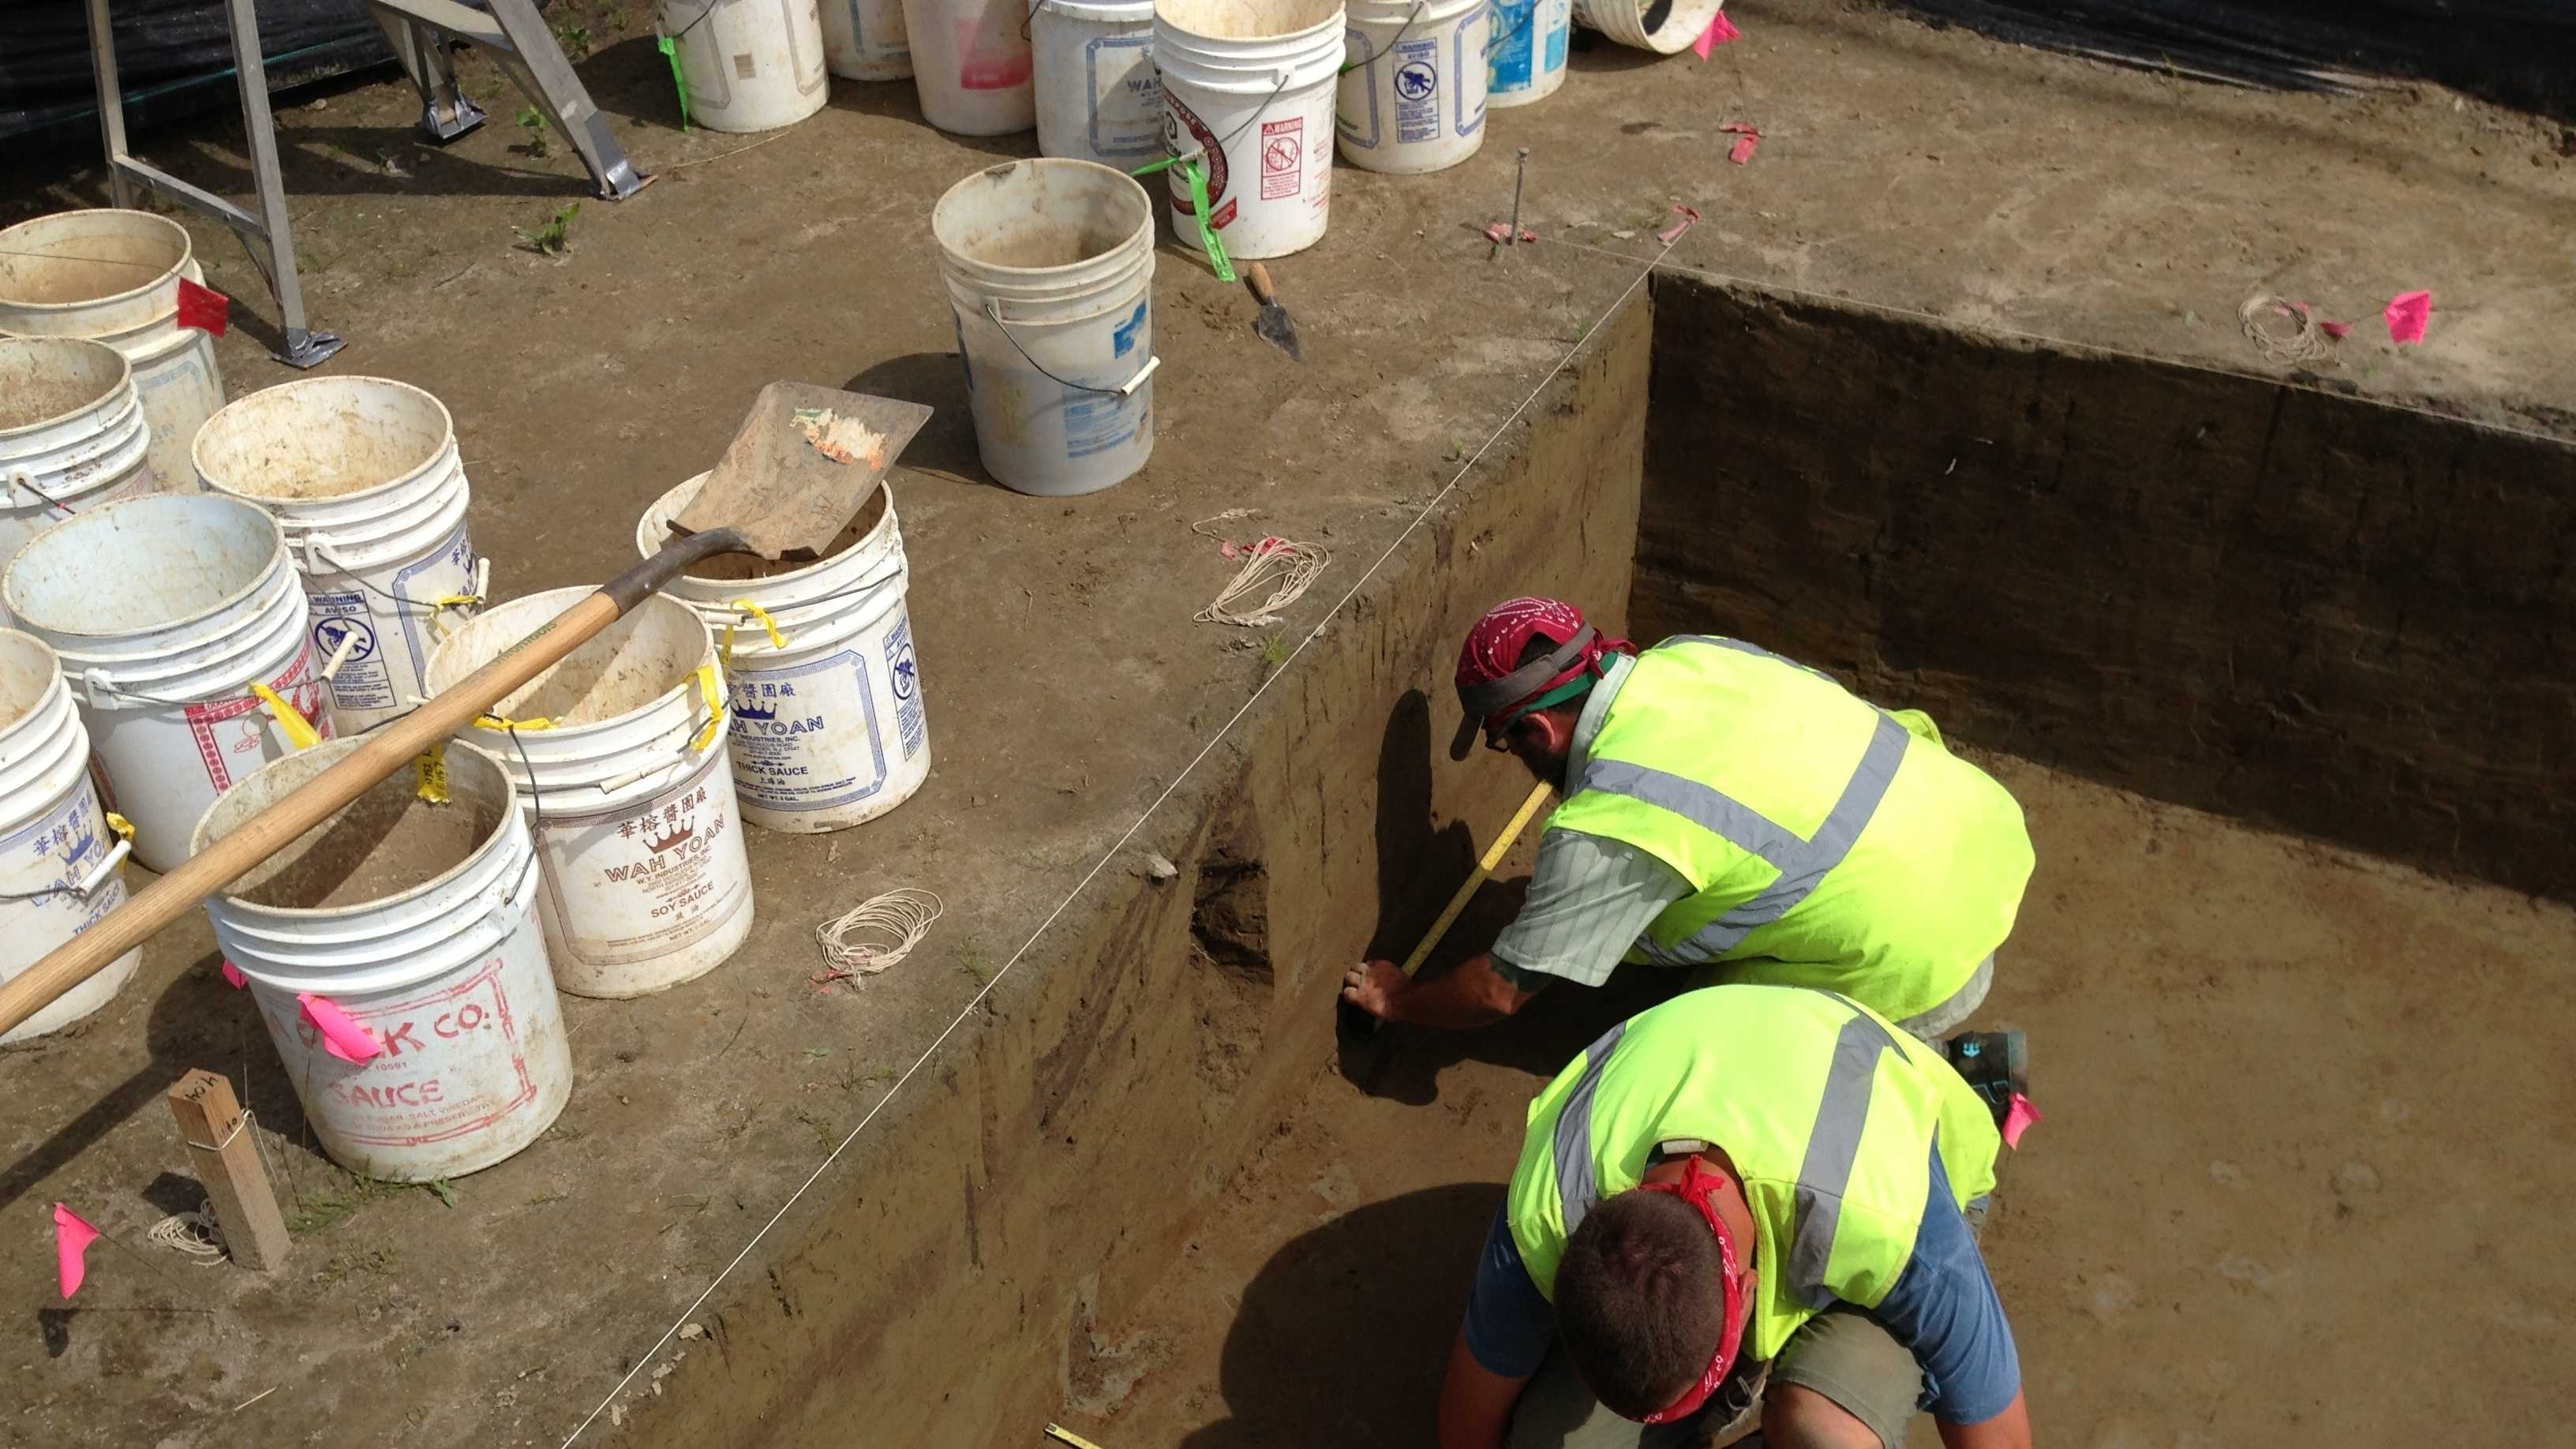 07-12-13 Archaeological dig unearths ancient history - img